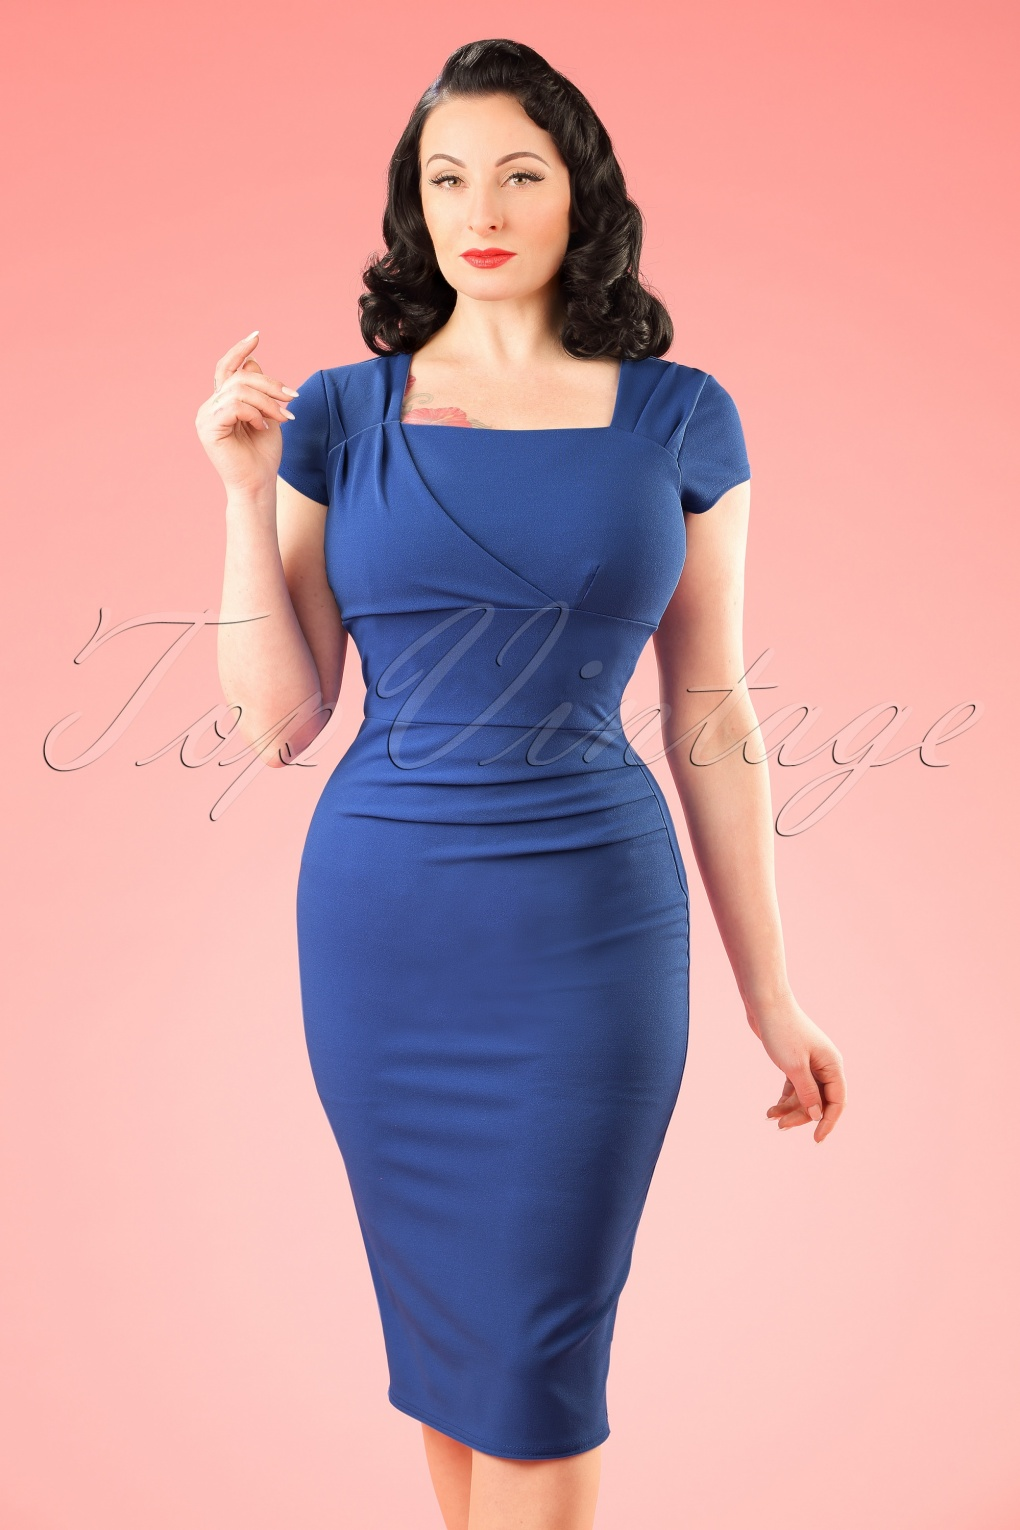 1960s Style Dresses- Retro Inspired Fashion 50s Laila Pleated Pencil Dress in Royal Blue £48.35 AT vintagedancer.com